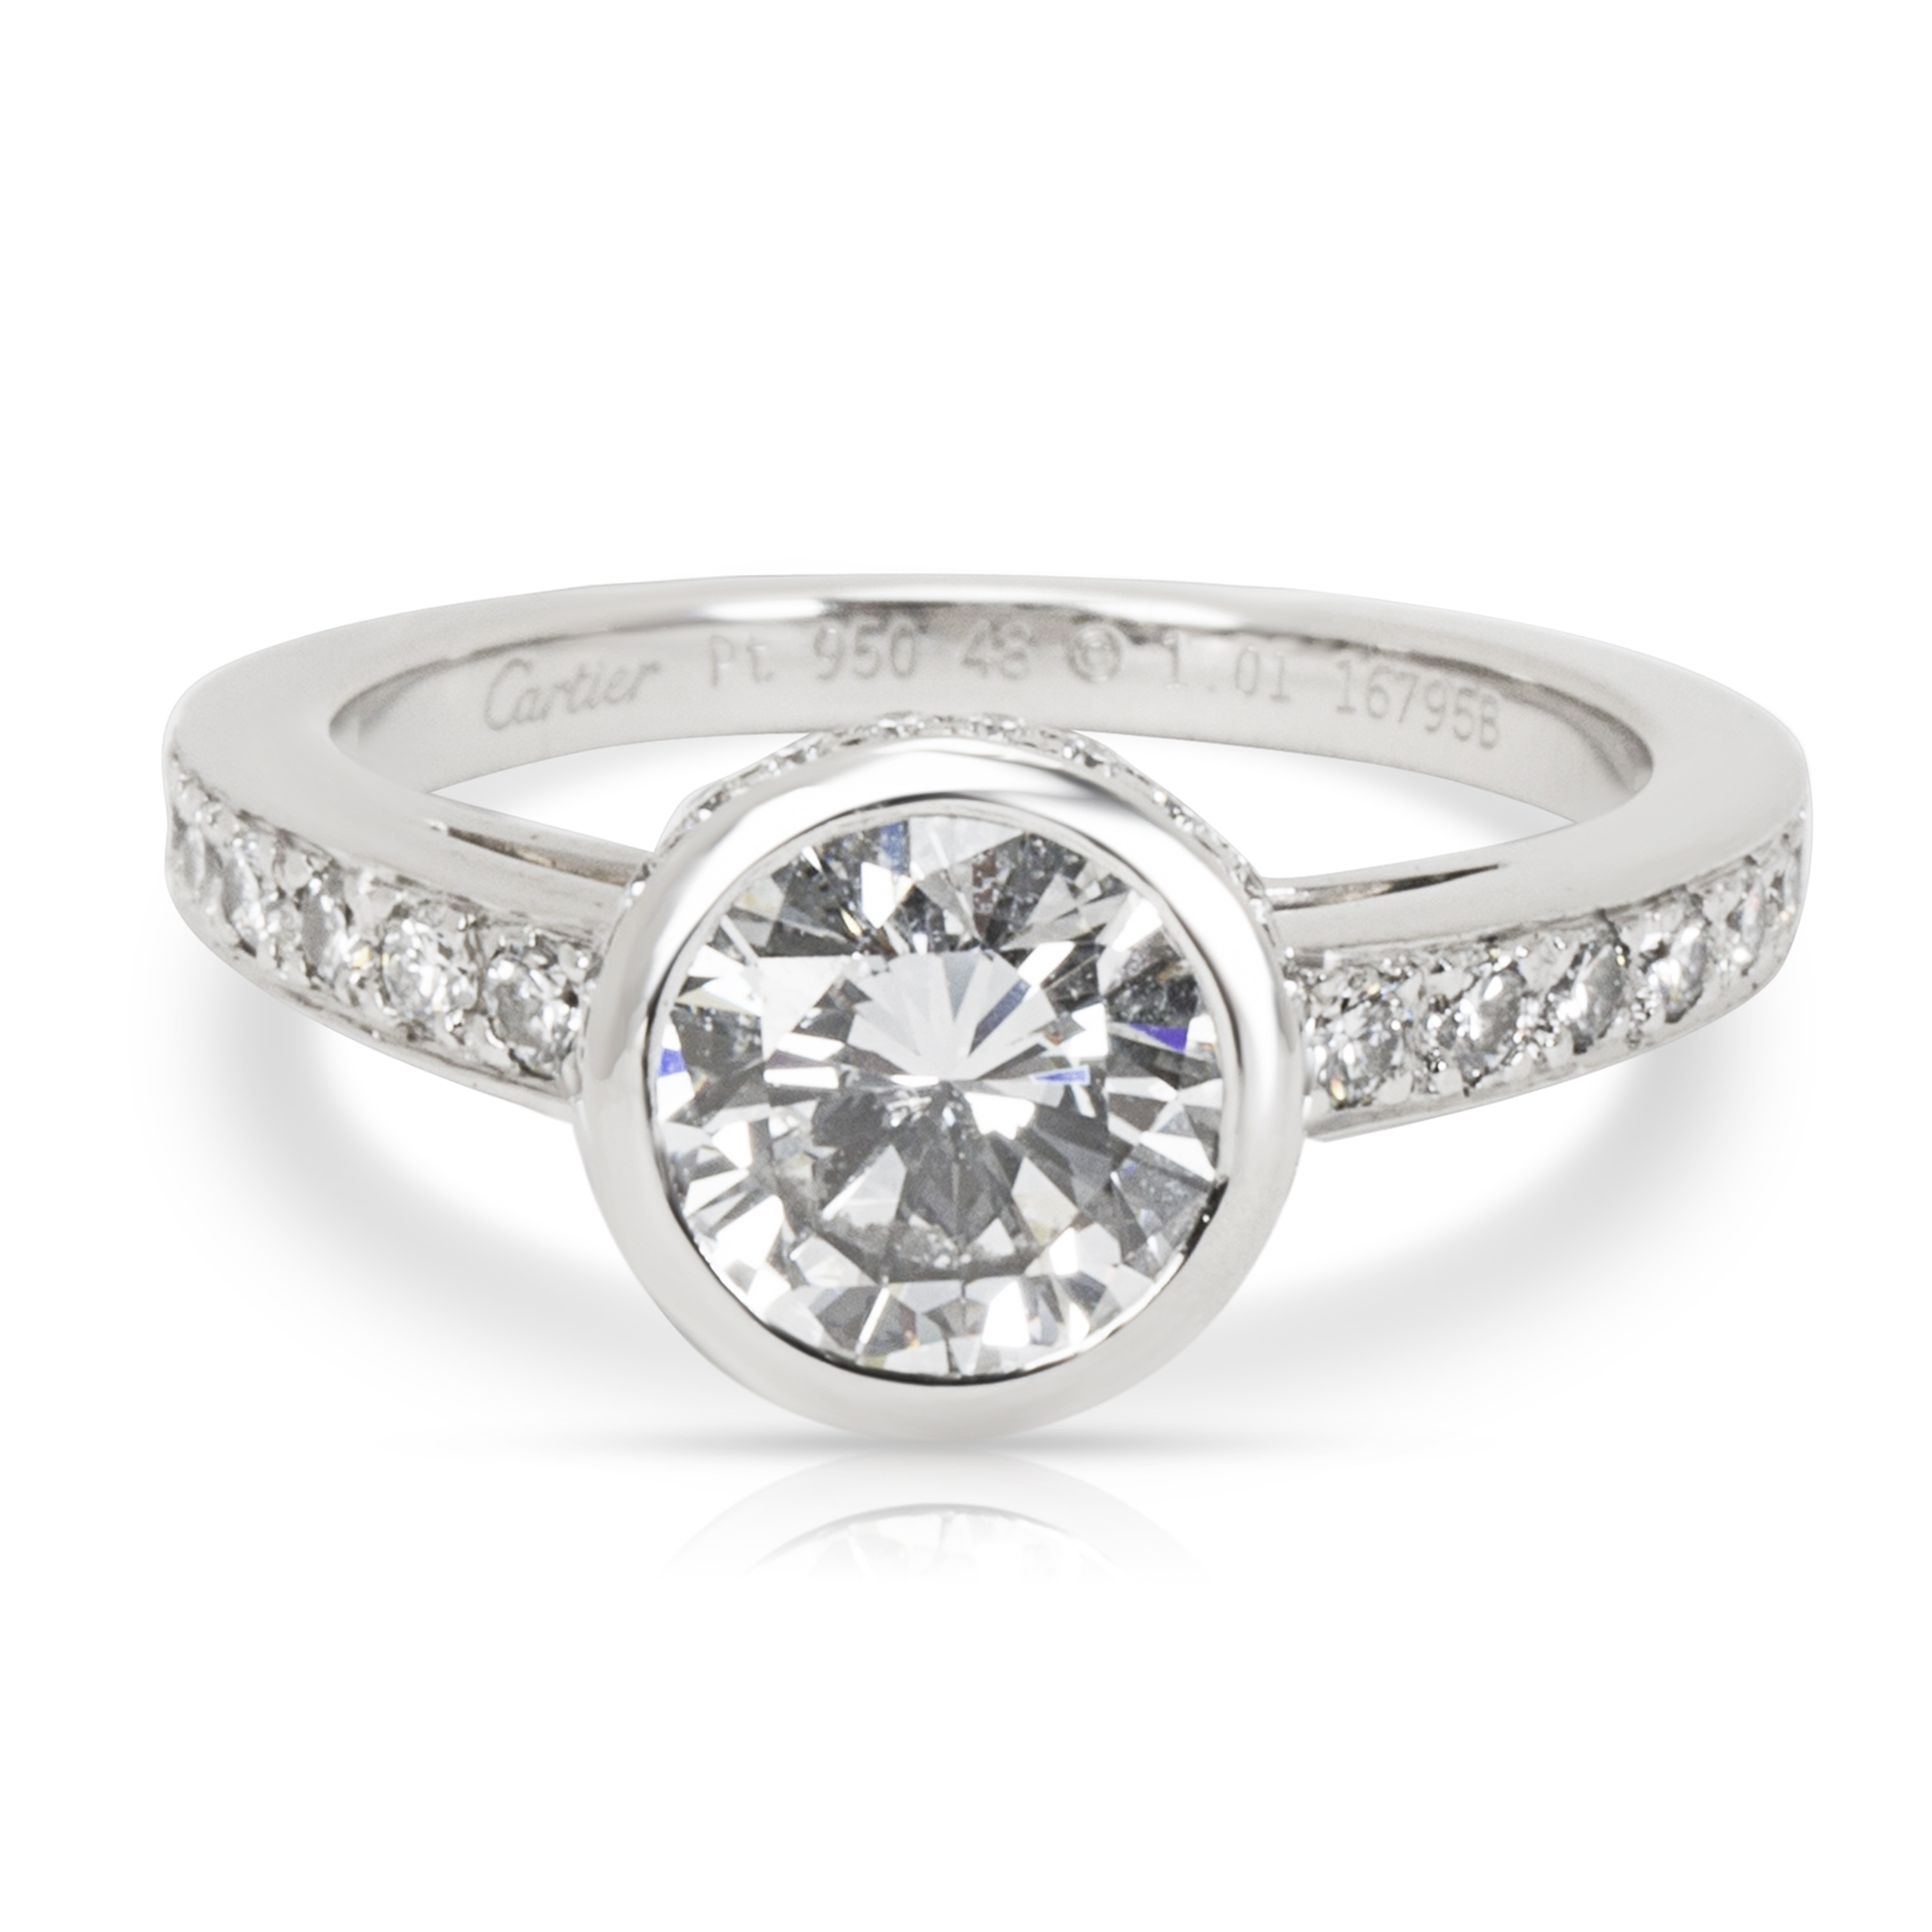 Preowned Cartier Diamond Engagement Ring In Platinum 101 Evs1 Center: Cartier Wedding Rings Sets At Websimilar.org